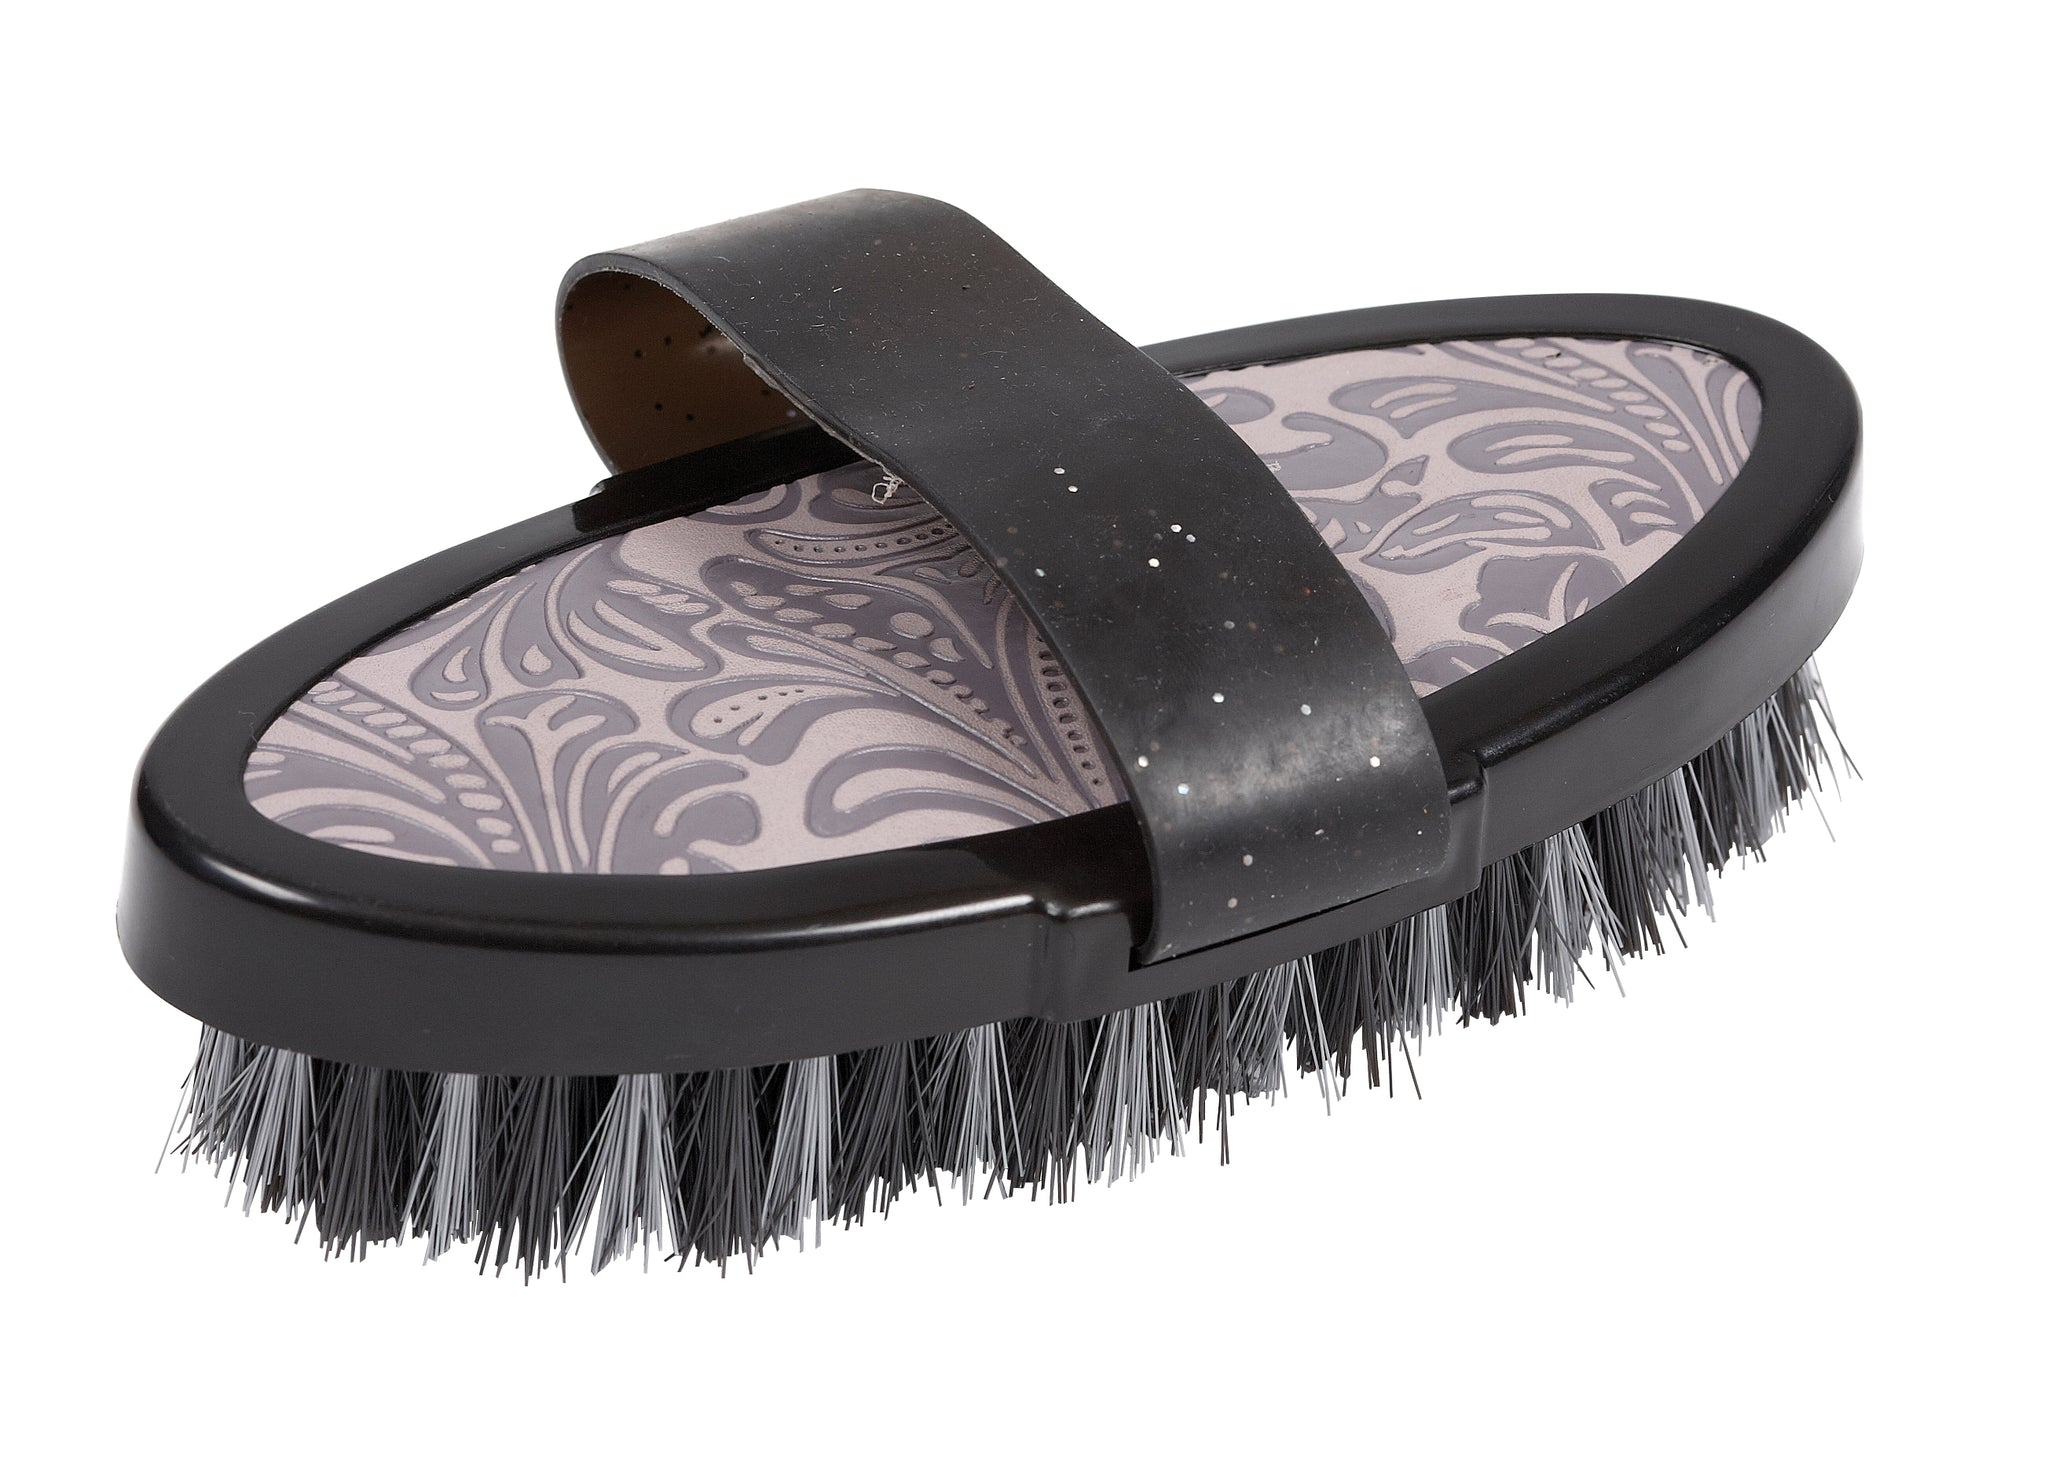 Roma Equi Leather Back Soft Touch Body Brush